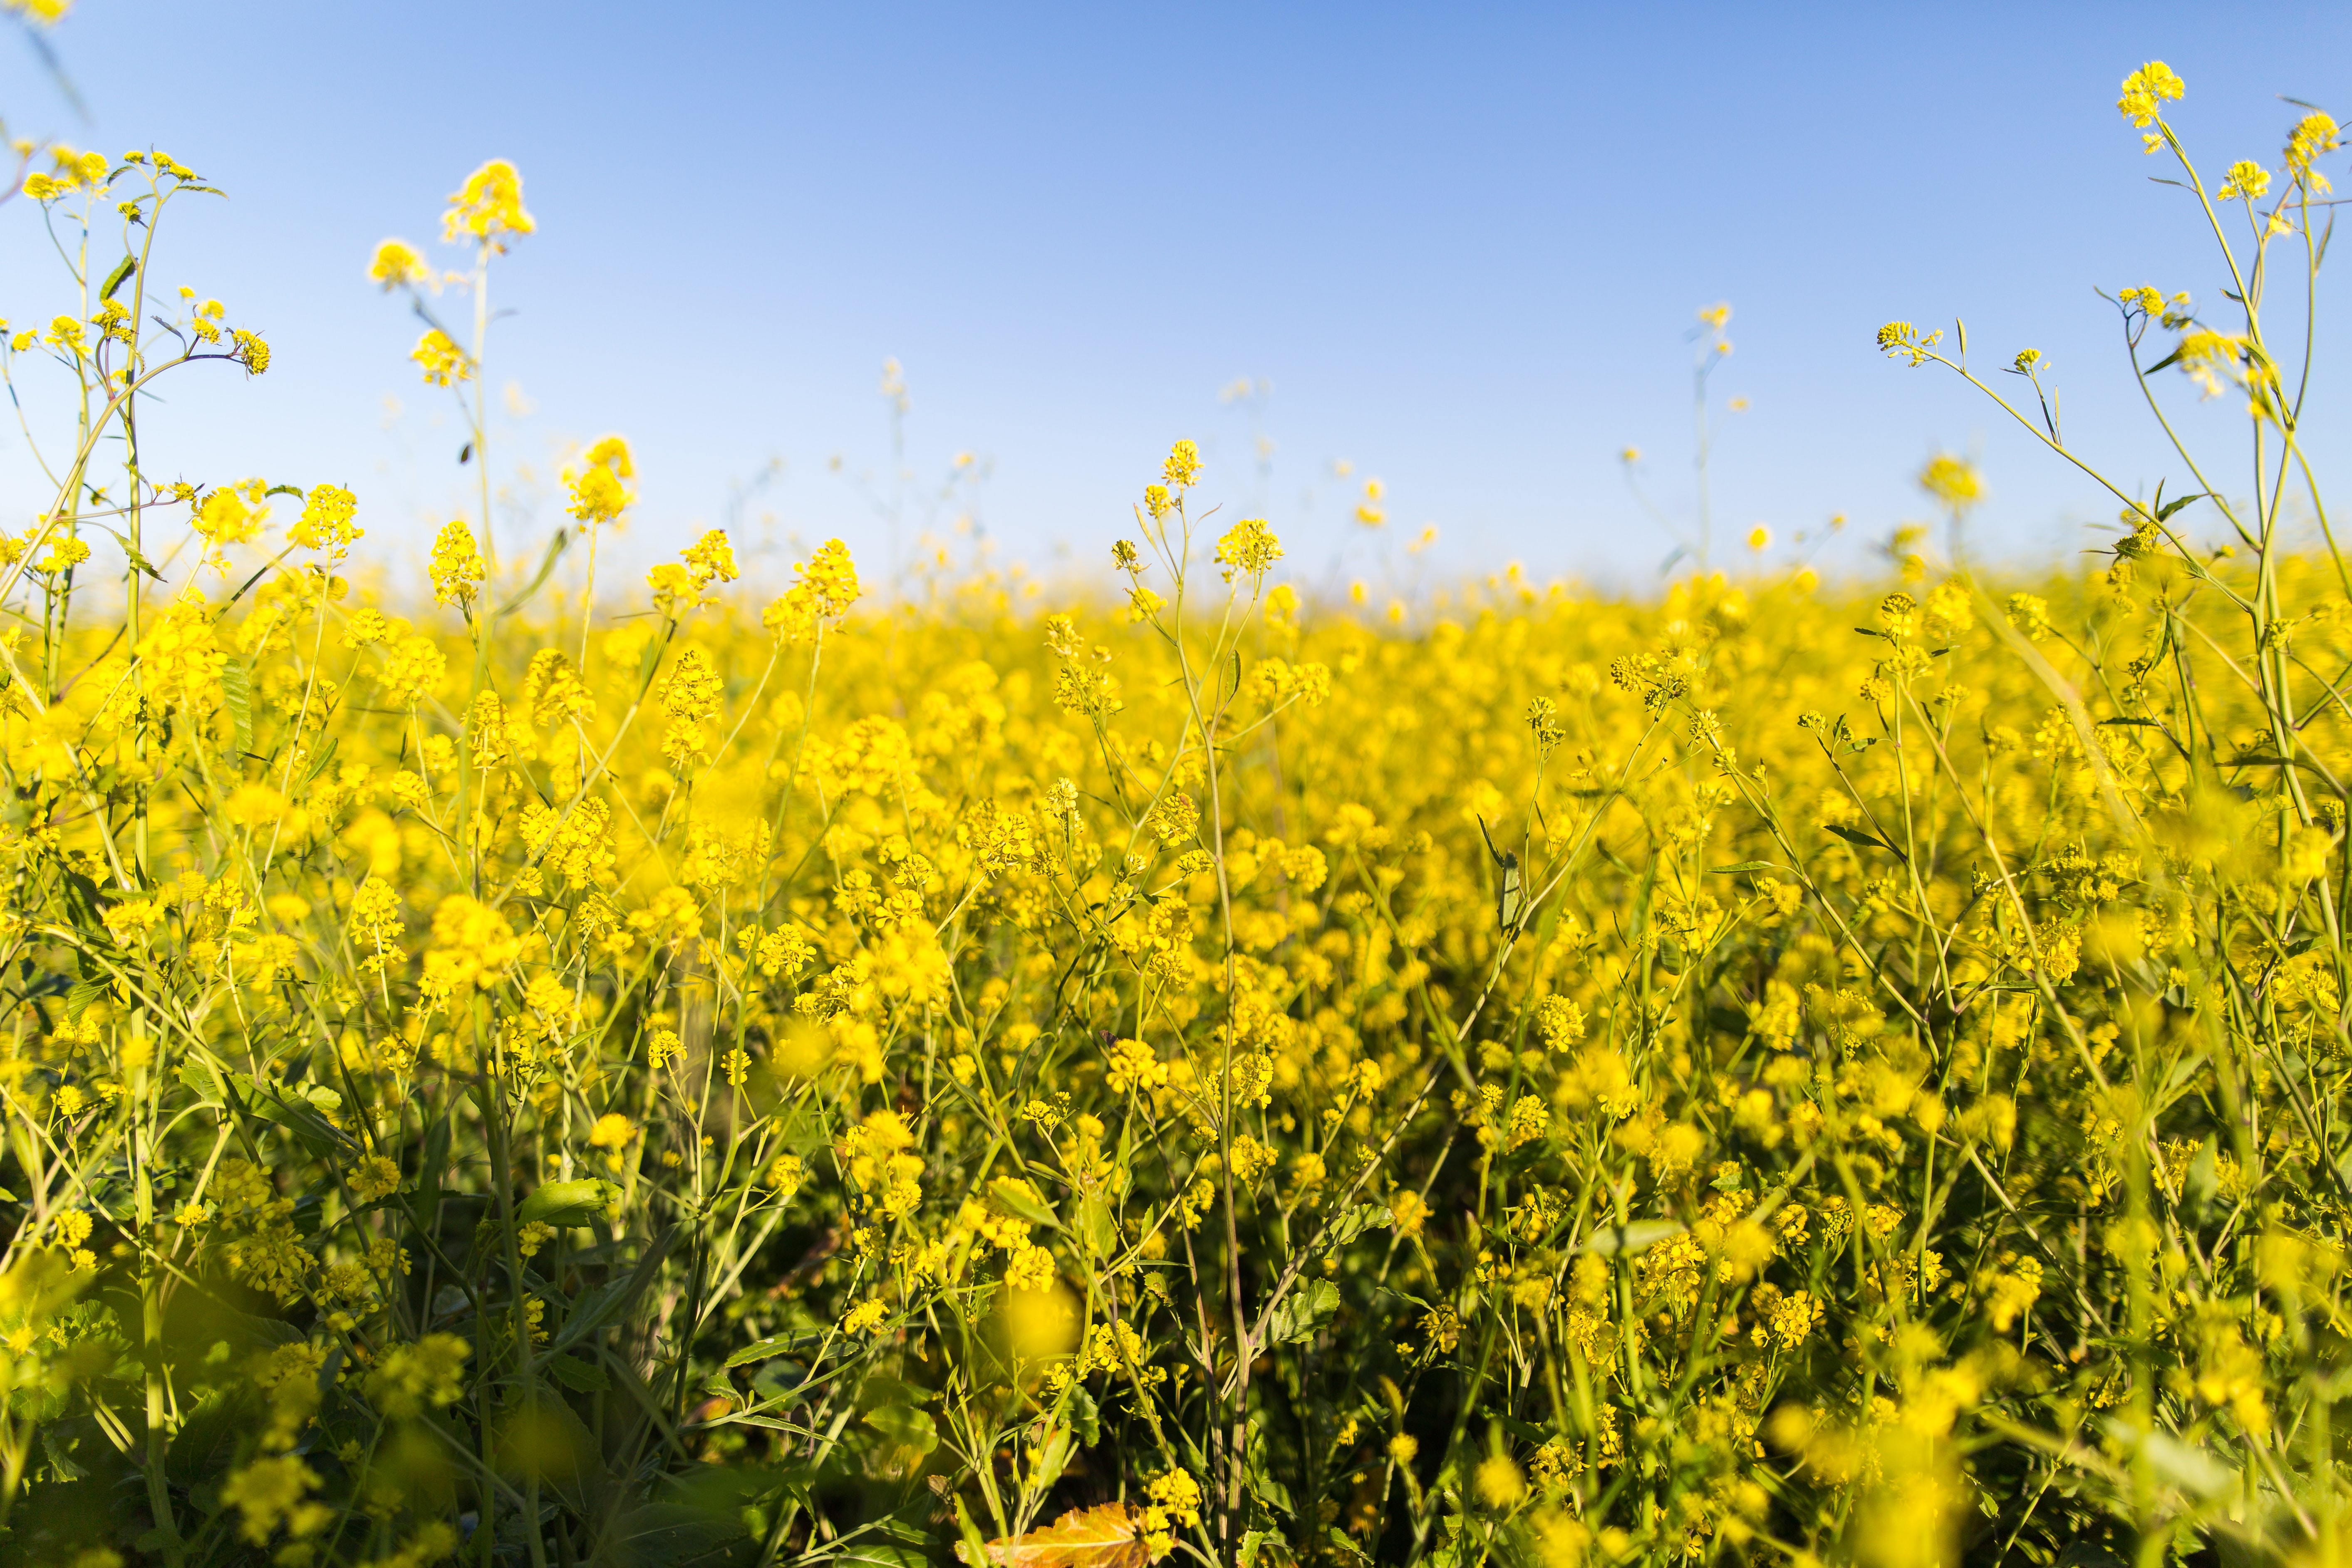 Thick yellow rapeseed wildflowers in meadow with blue sky in Spring in Ars-en-Ré